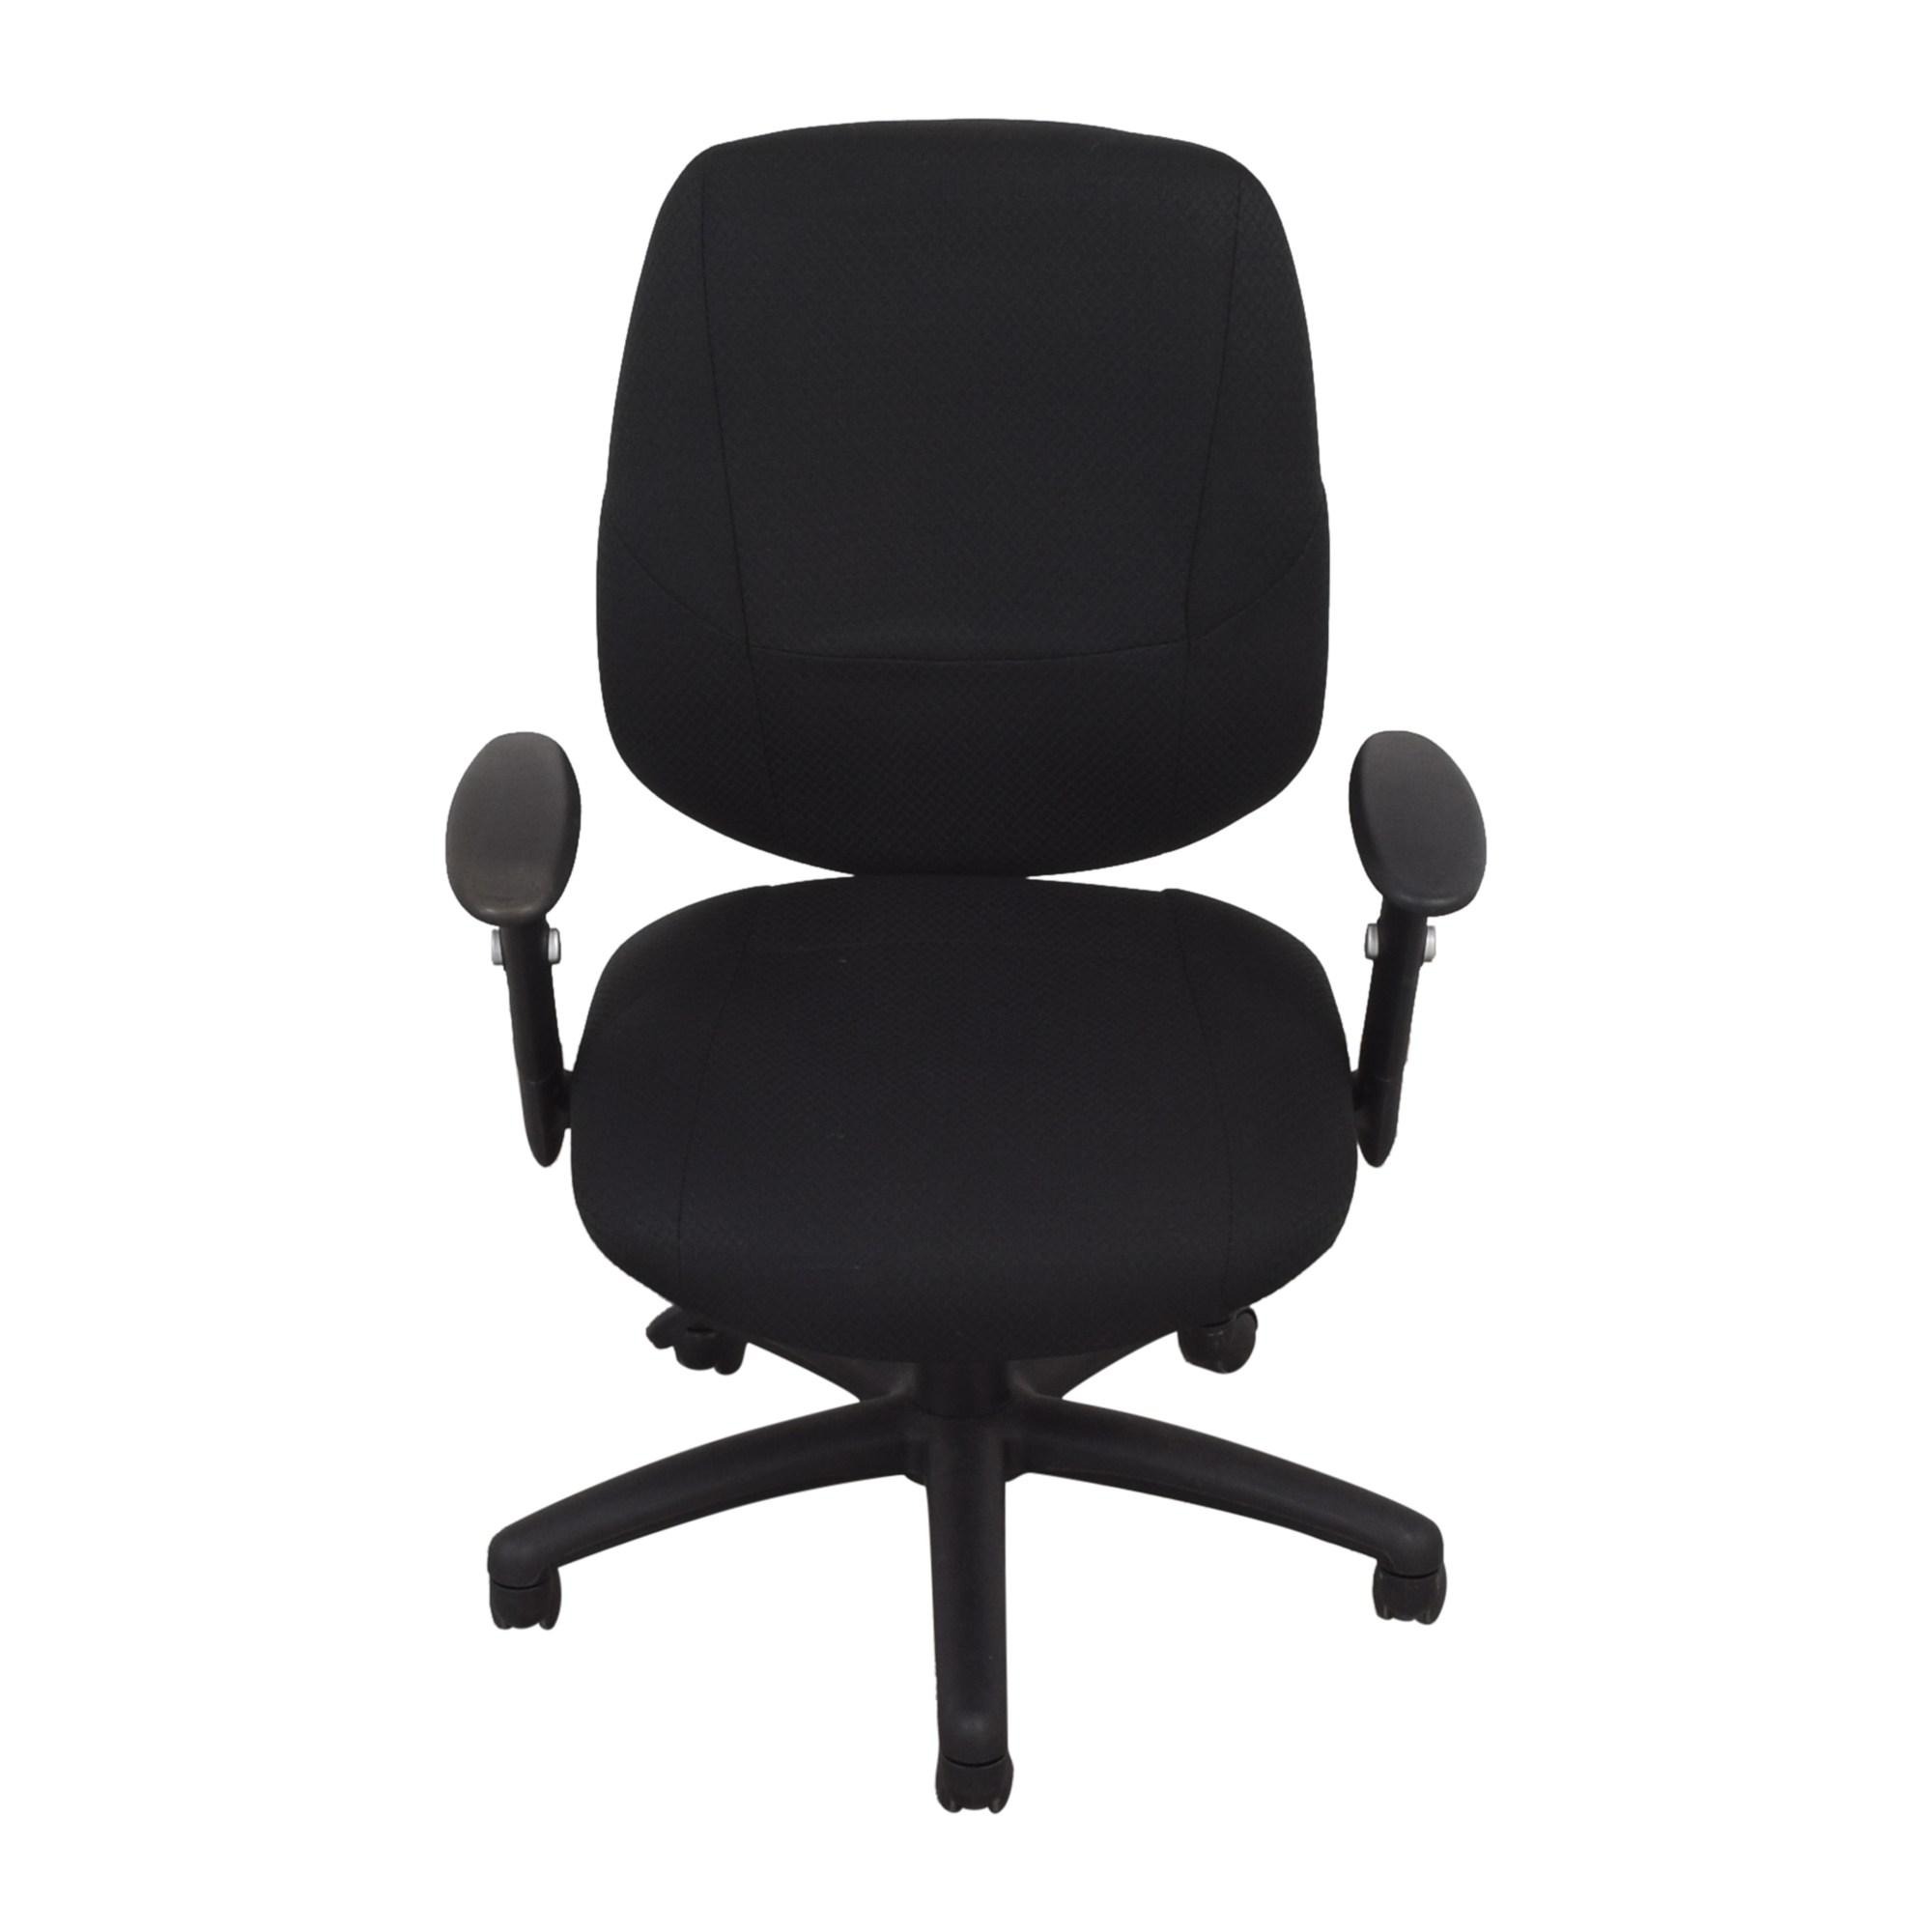 Offices to Go Offices to Go Adjustable Office Chair dimensions